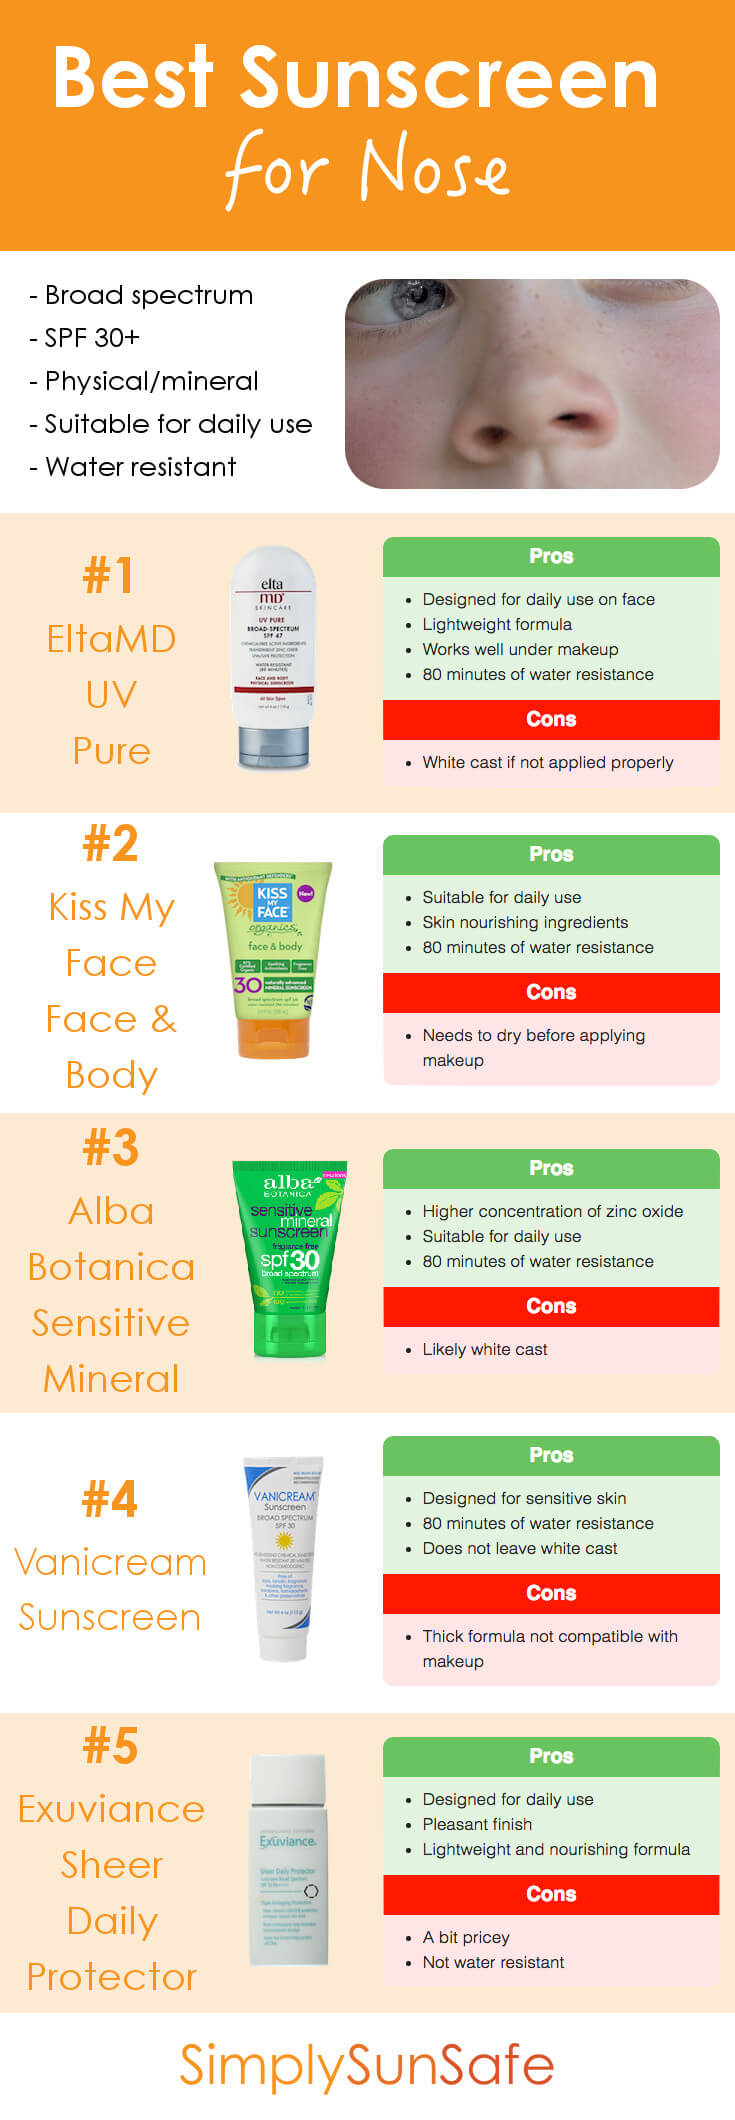 Best Sunscreen for Nose Pinterest